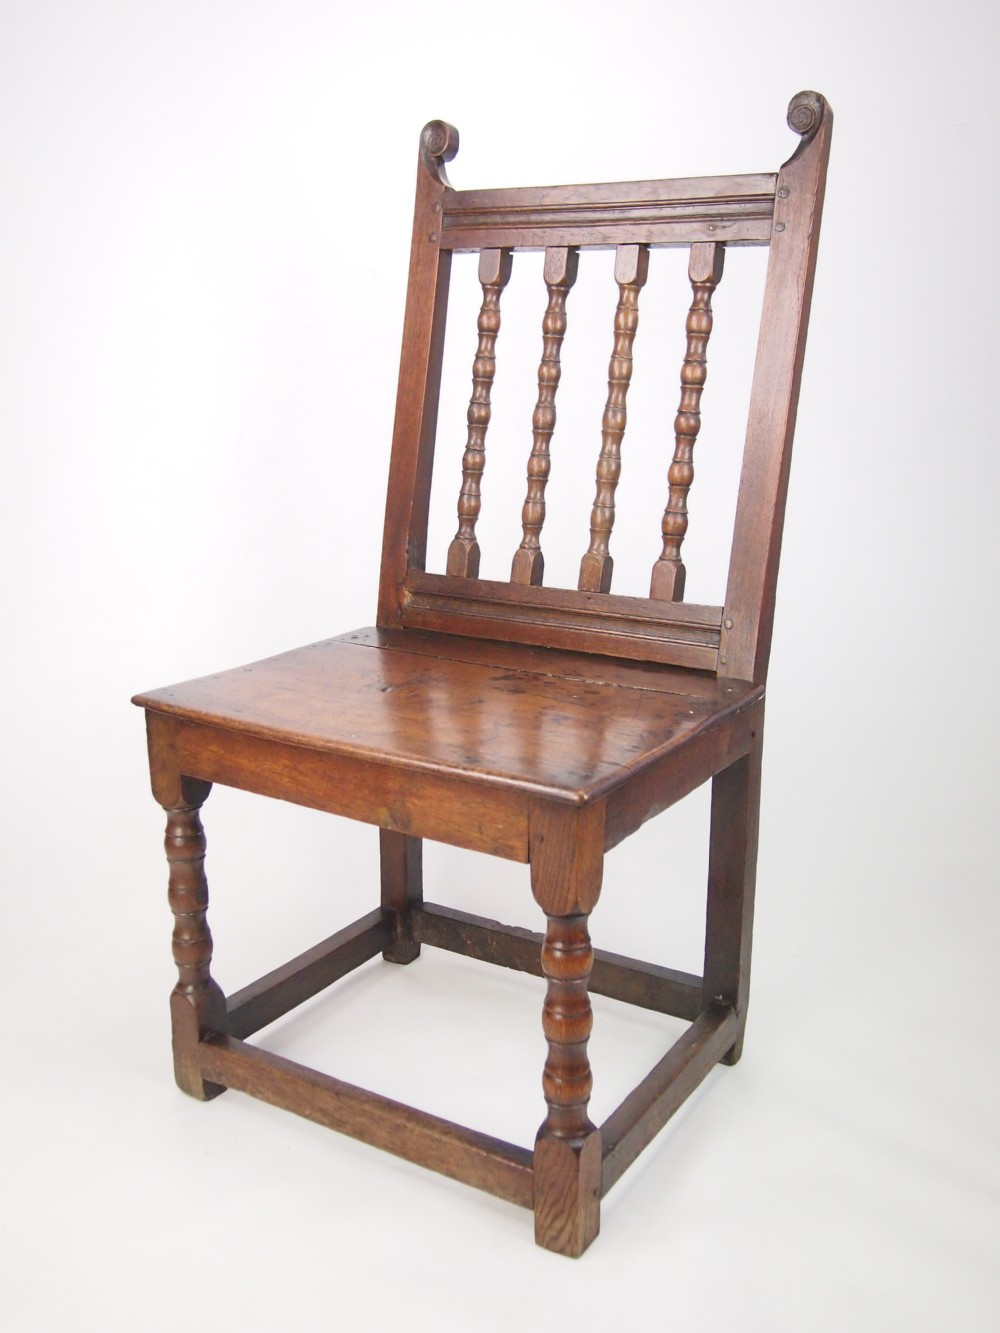 late 17th century spindle back oak side chair - Late 17th Century Spindle Back Oak Side Chair 259274